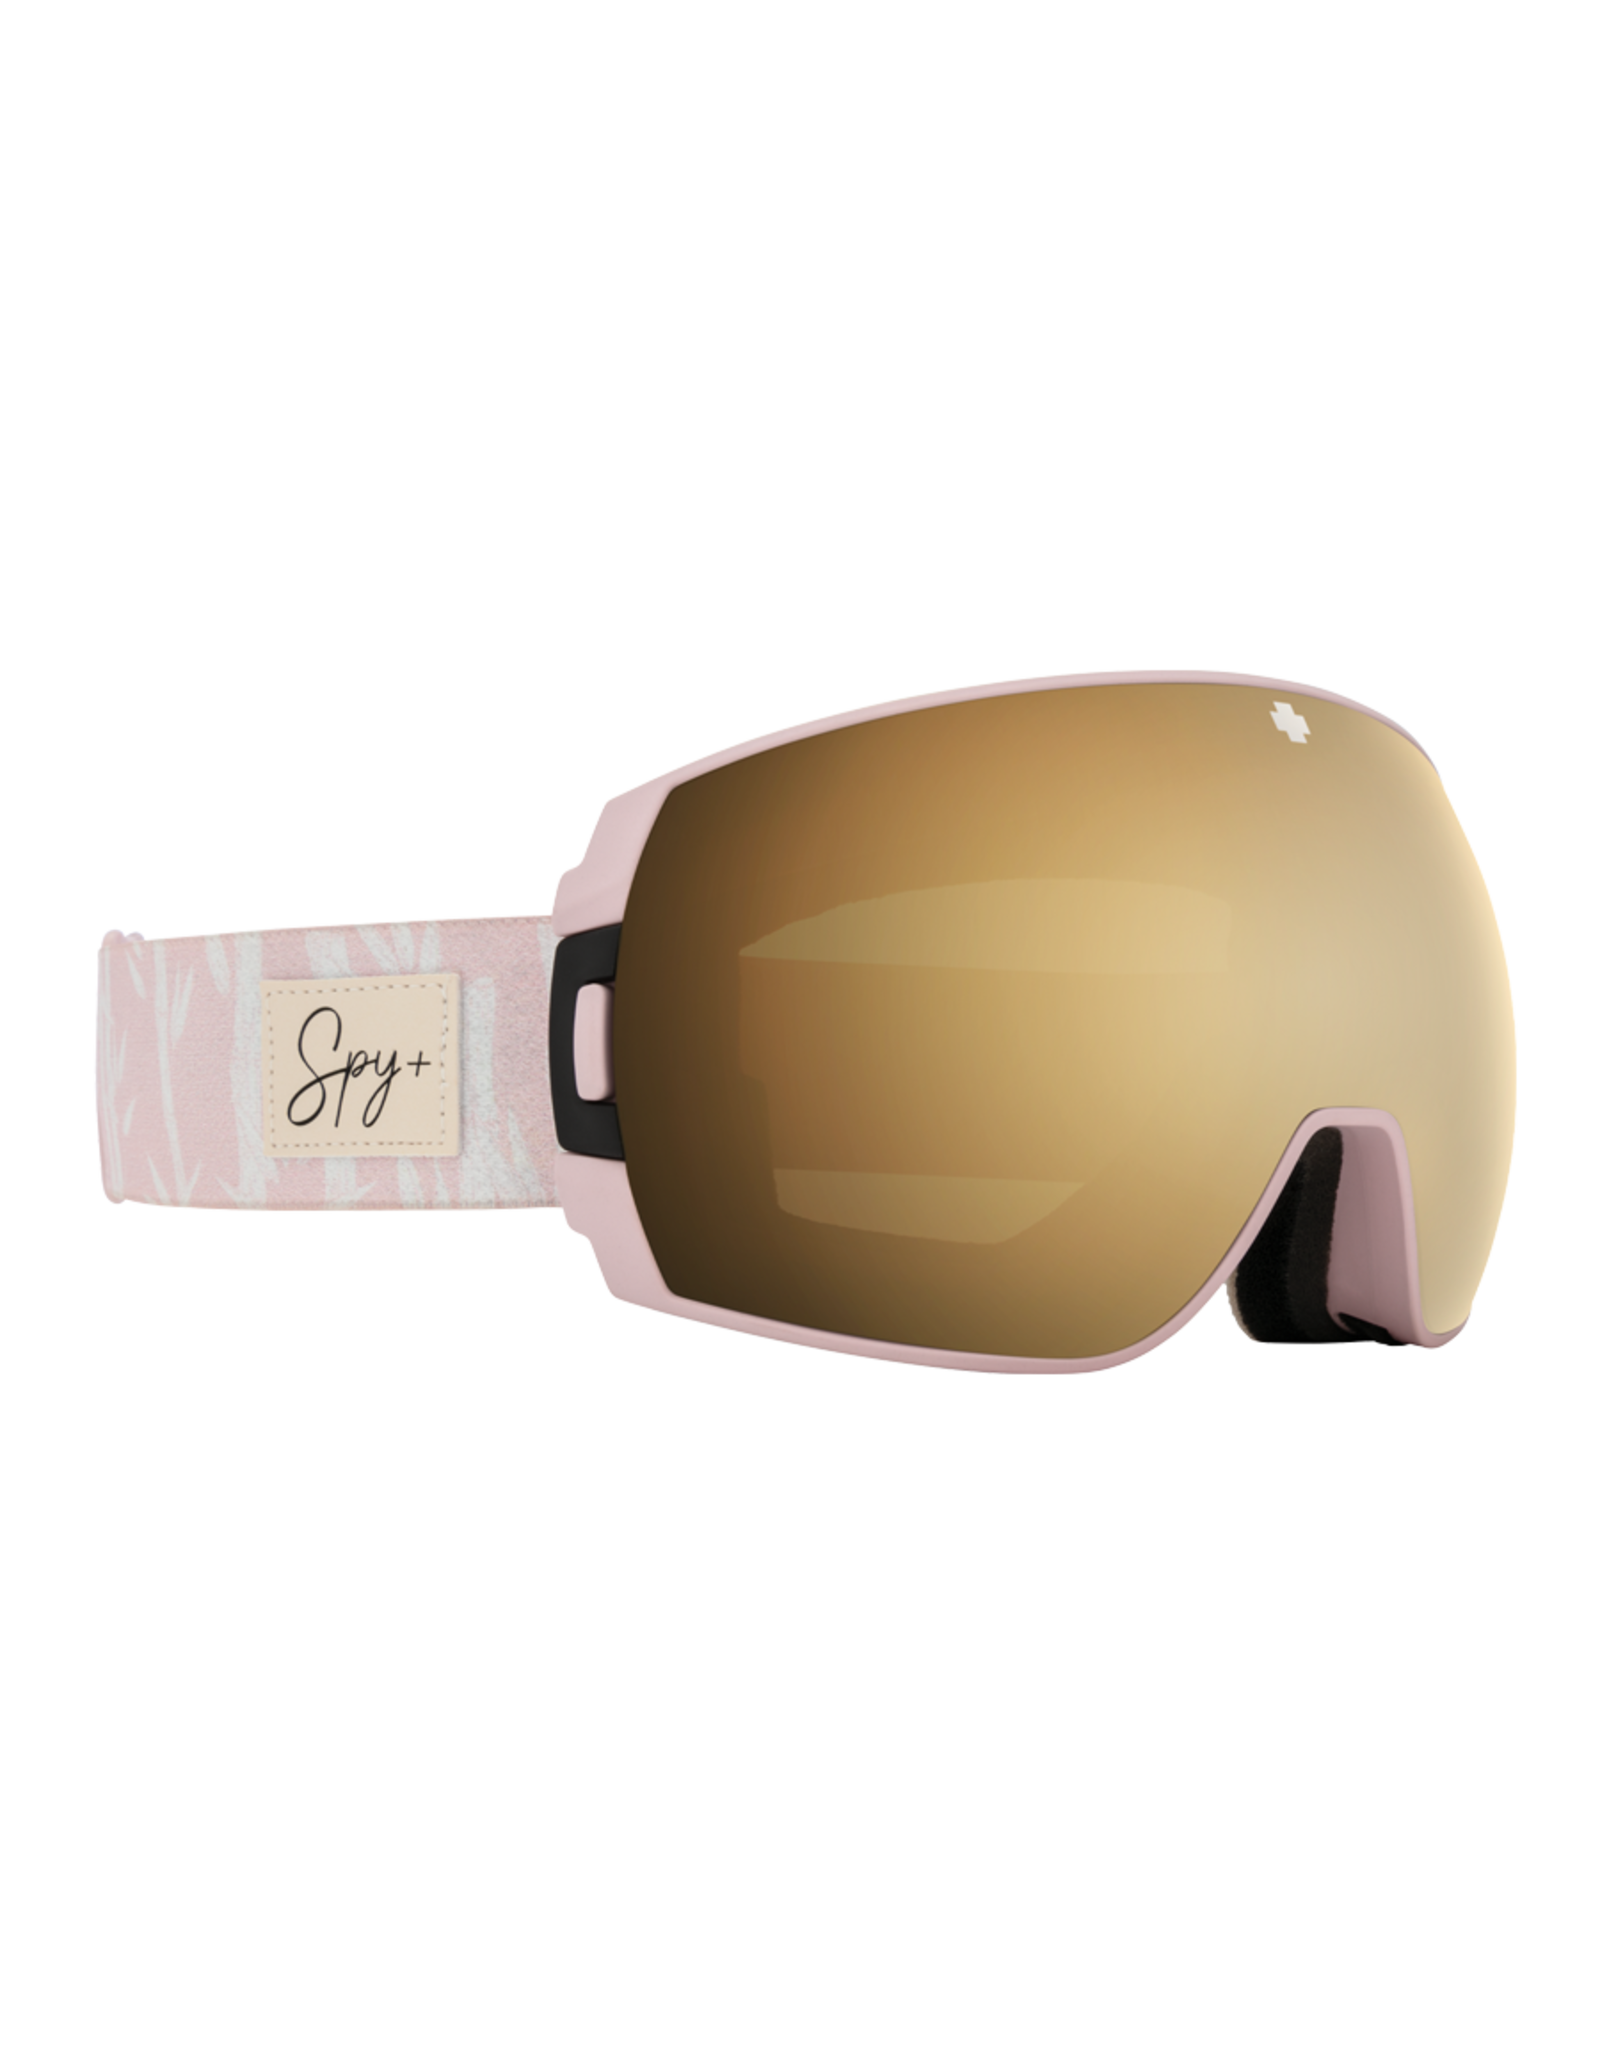 SPY Legacy SE Helen Schettini - HD Plus Bronze with Gold Spectra Mirror - HD Plus LL Persimmon with Silver Spectra Mirror